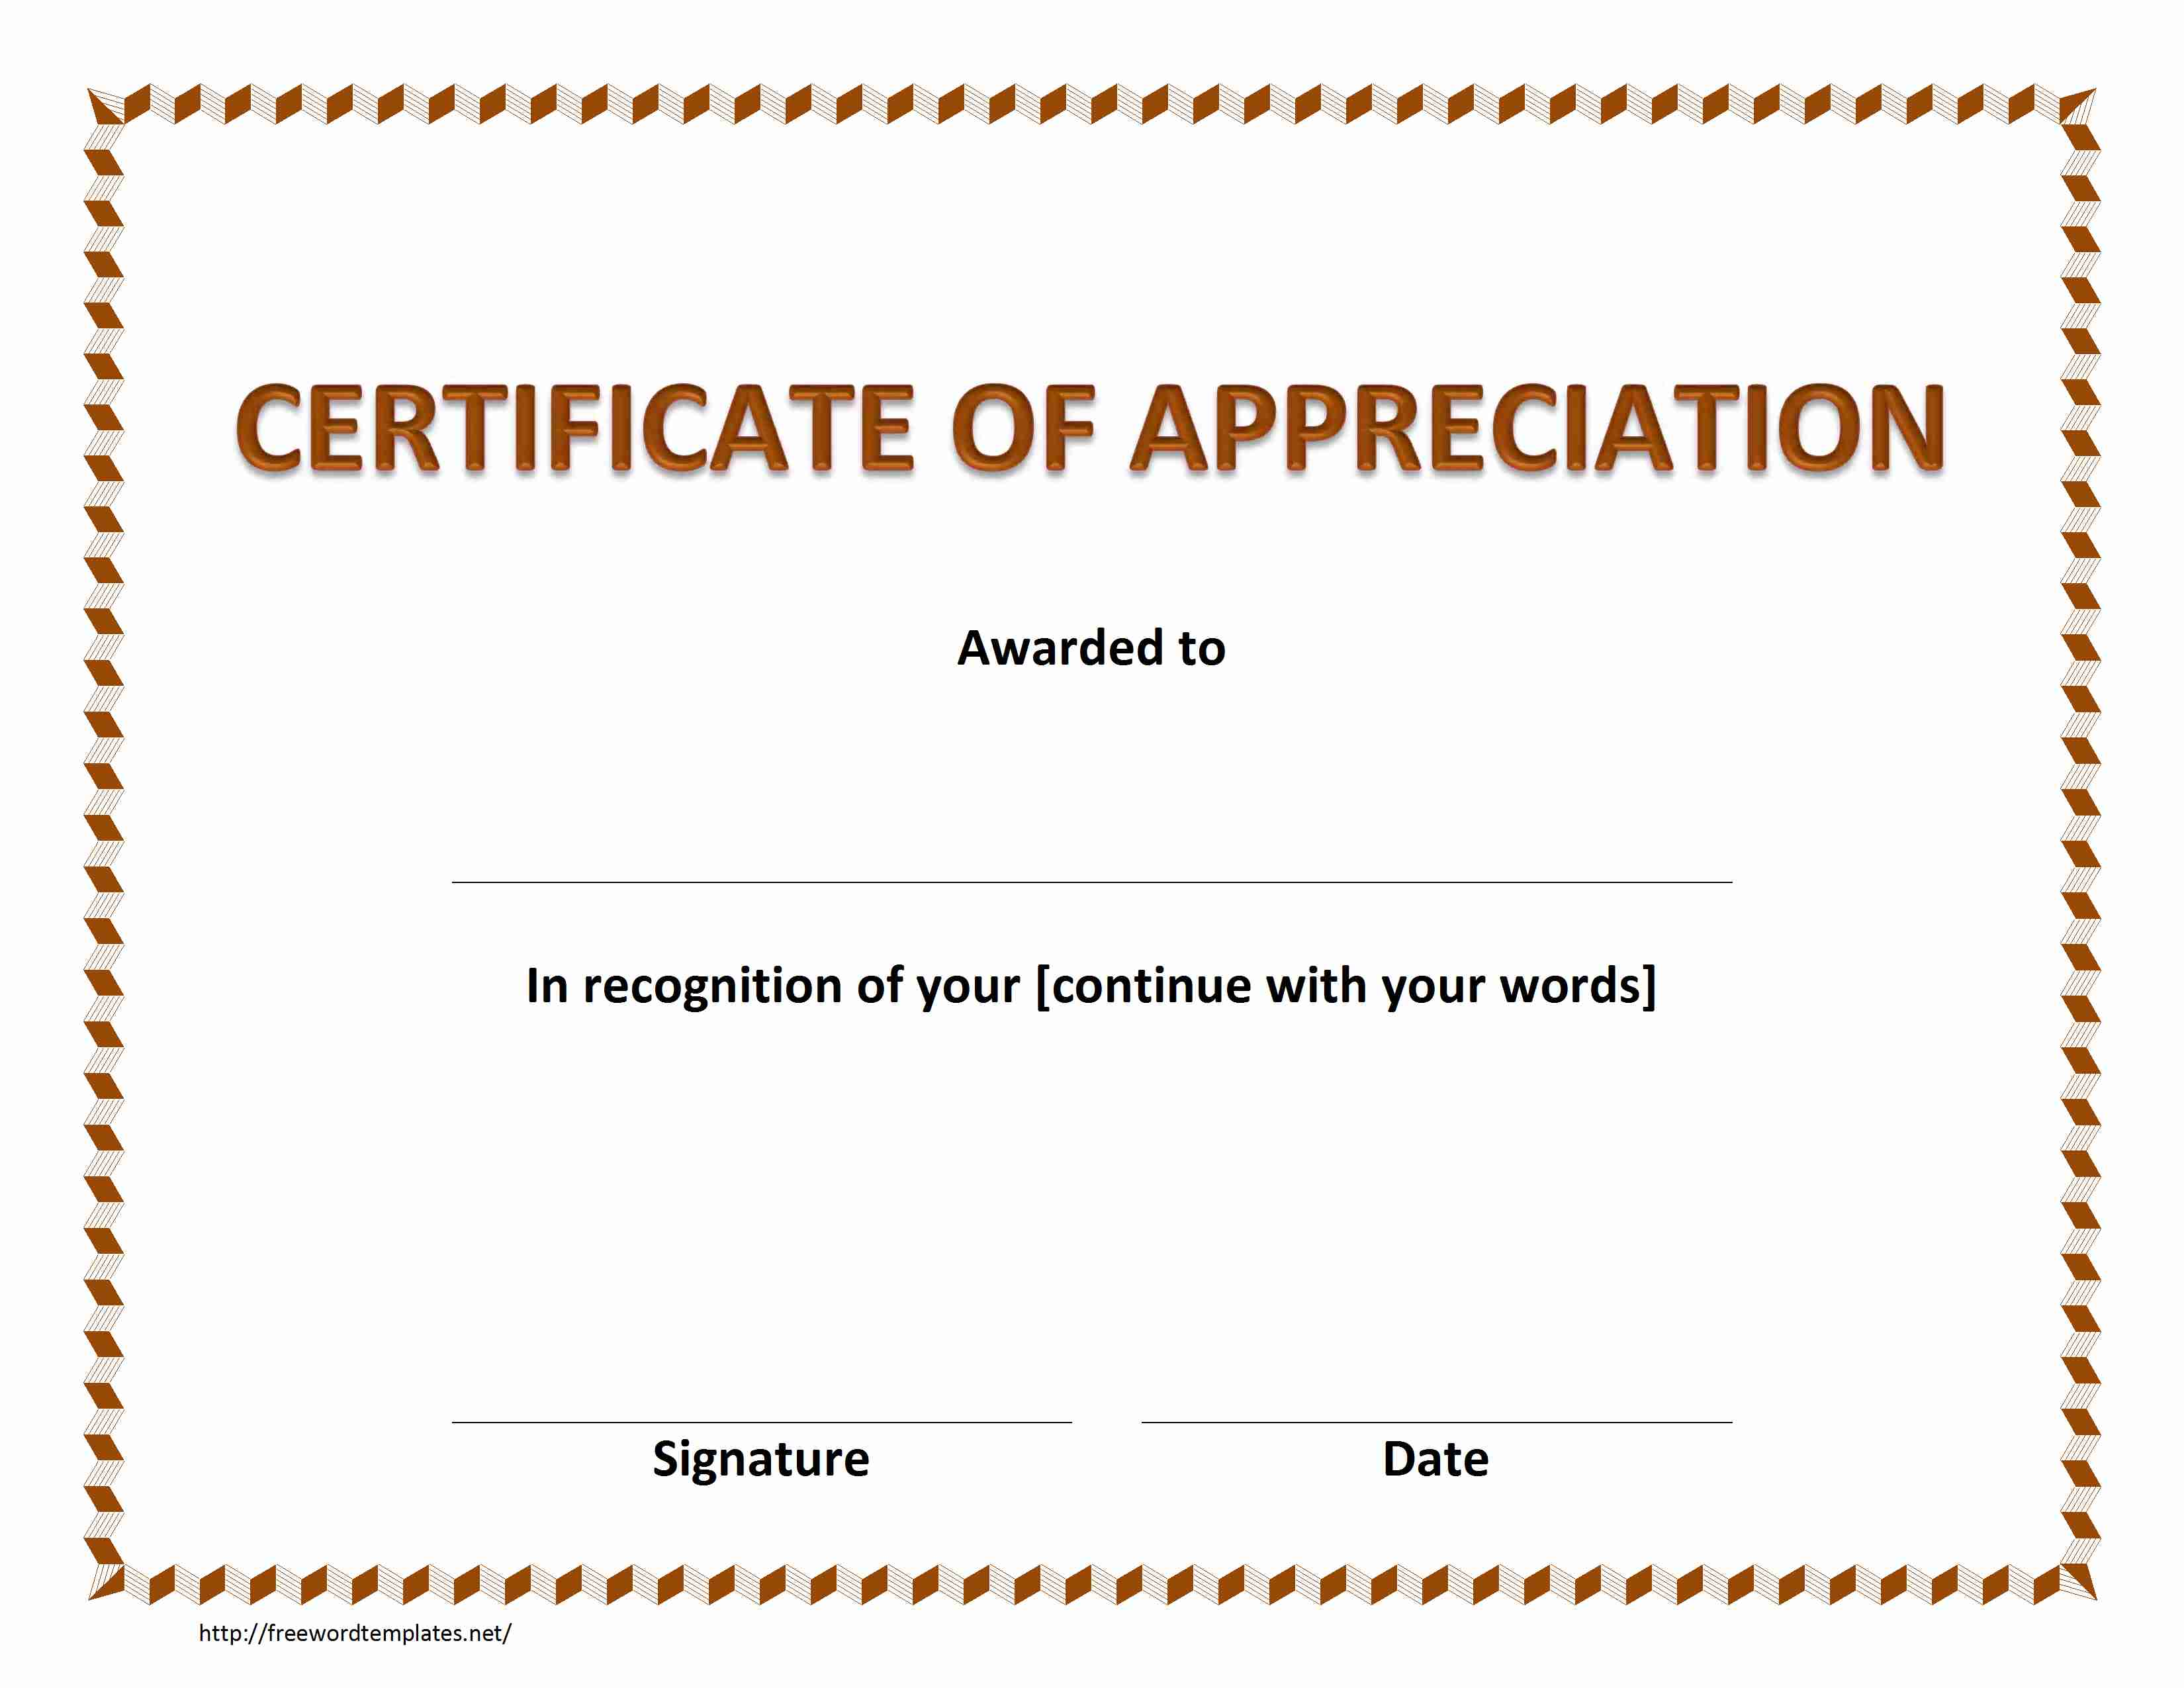 Certificate of appreciation 21g certificate of appreciation template for word yadclub